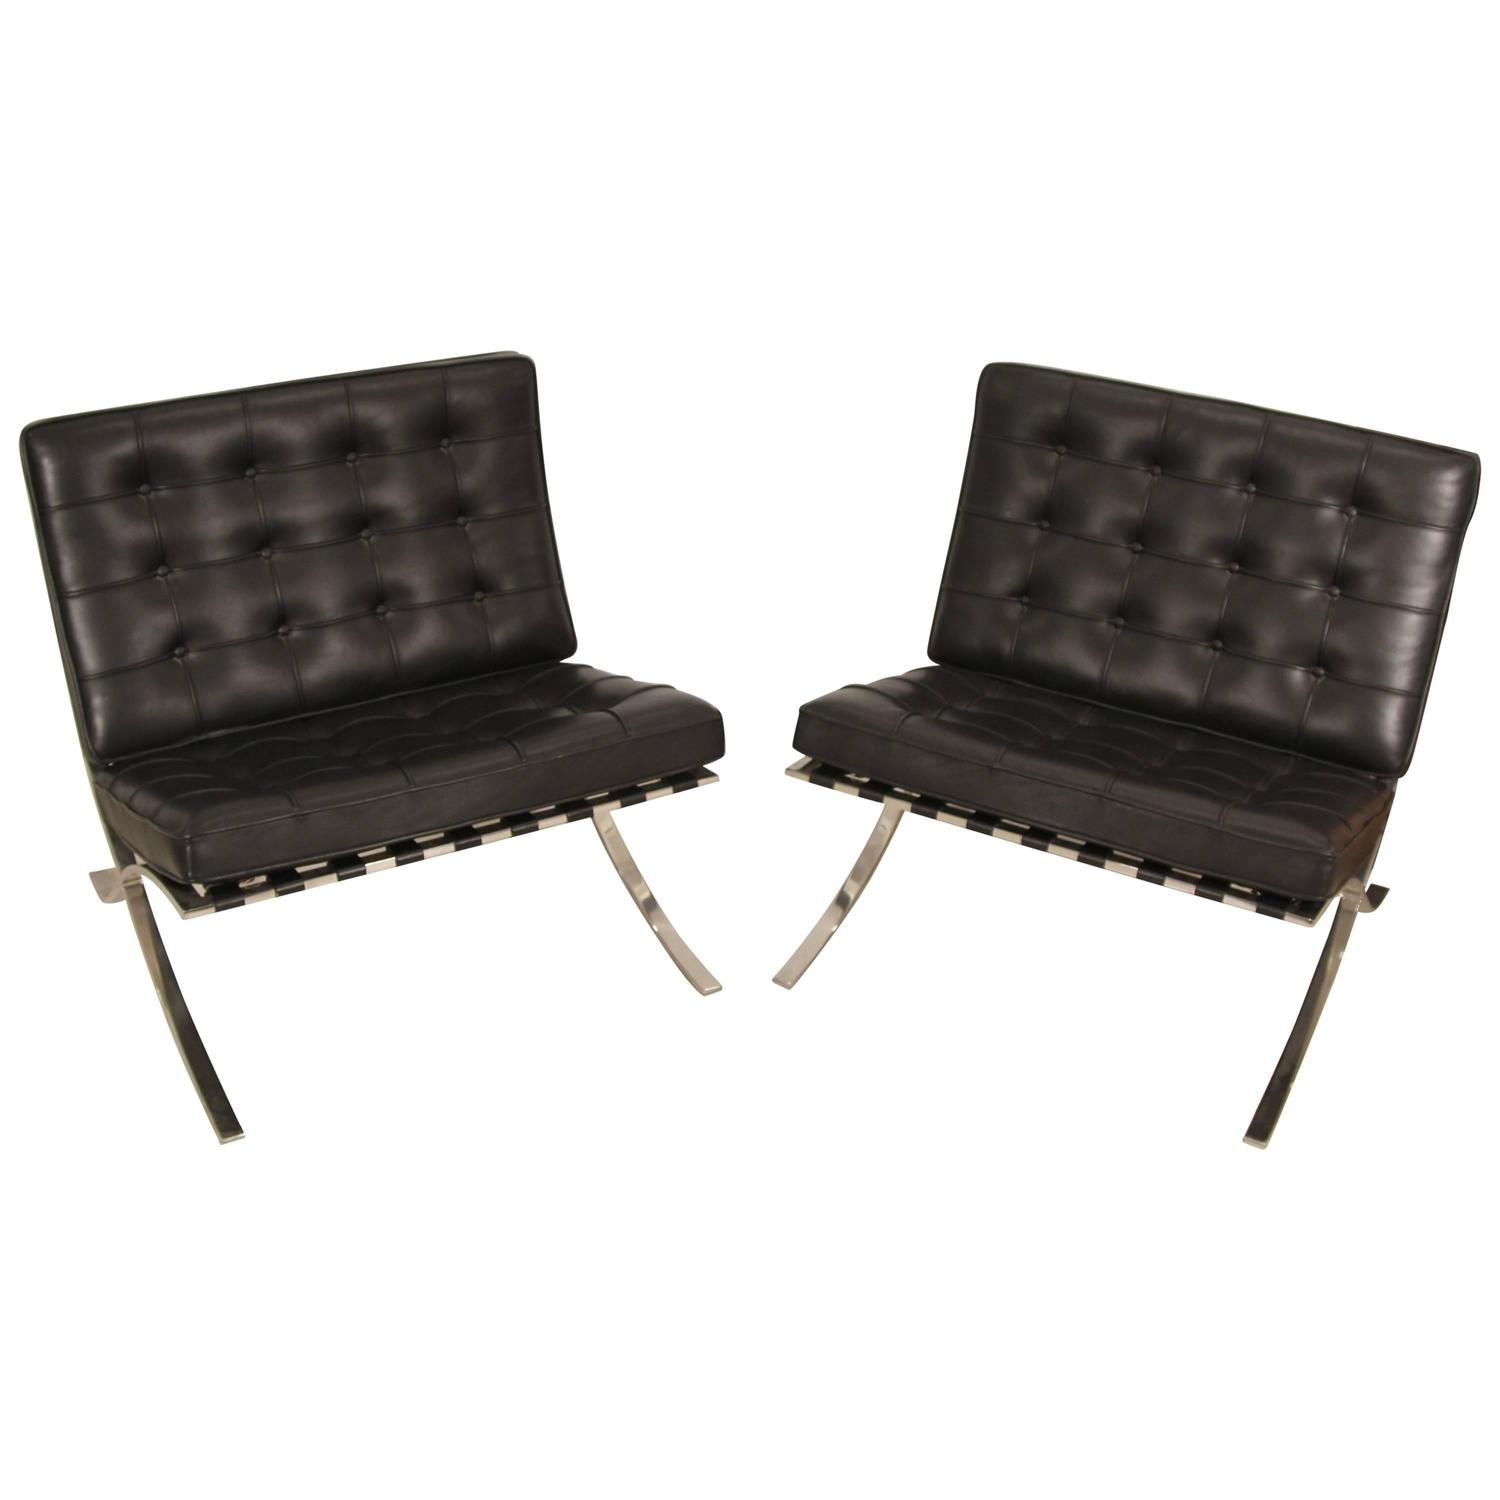 pair of mies van der rohe barcelona chairs for knoll for sale at 1stdibs. Black Bedroom Furniture Sets. Home Design Ideas